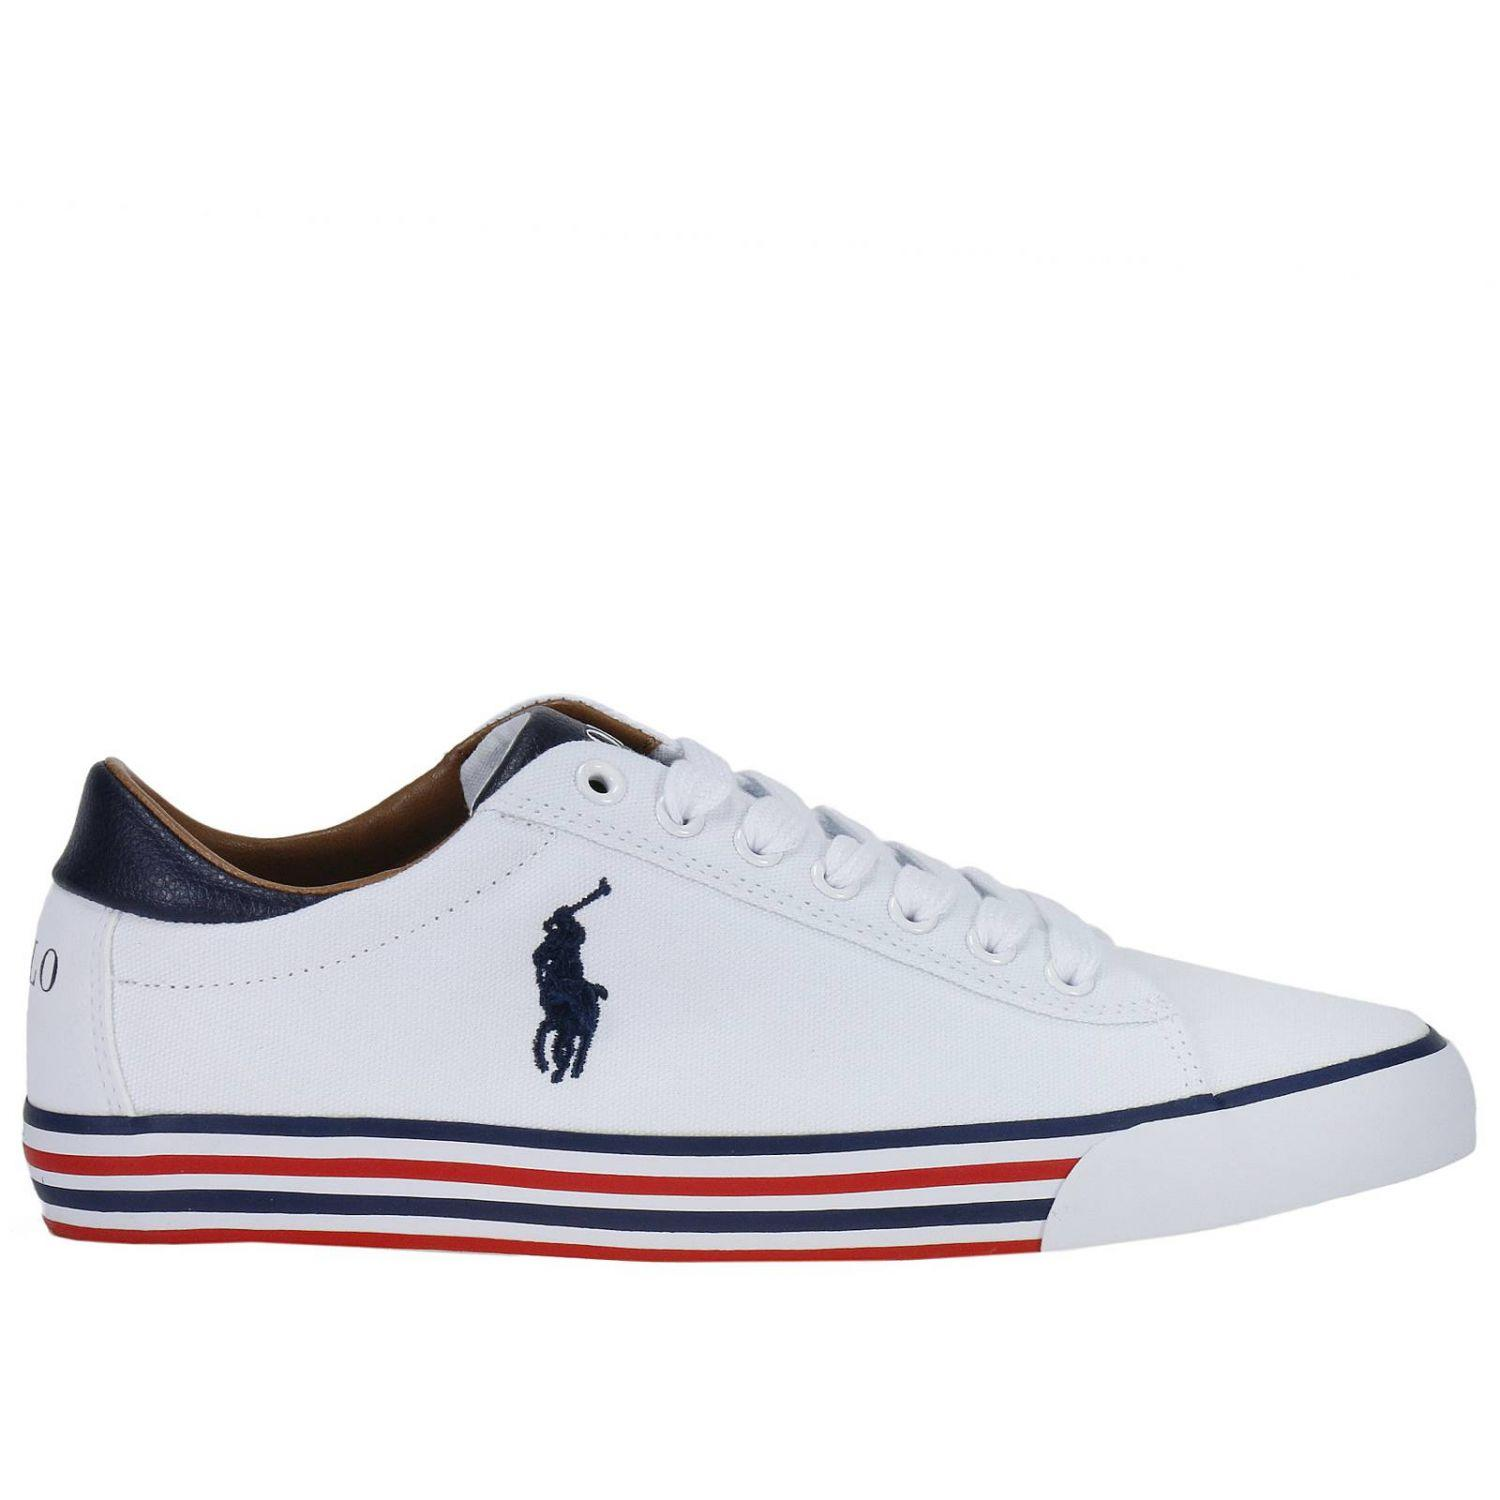 polo ralph lauren sneakers shoes men in white for men lyst. Black Bedroom Furniture Sets. Home Design Ideas